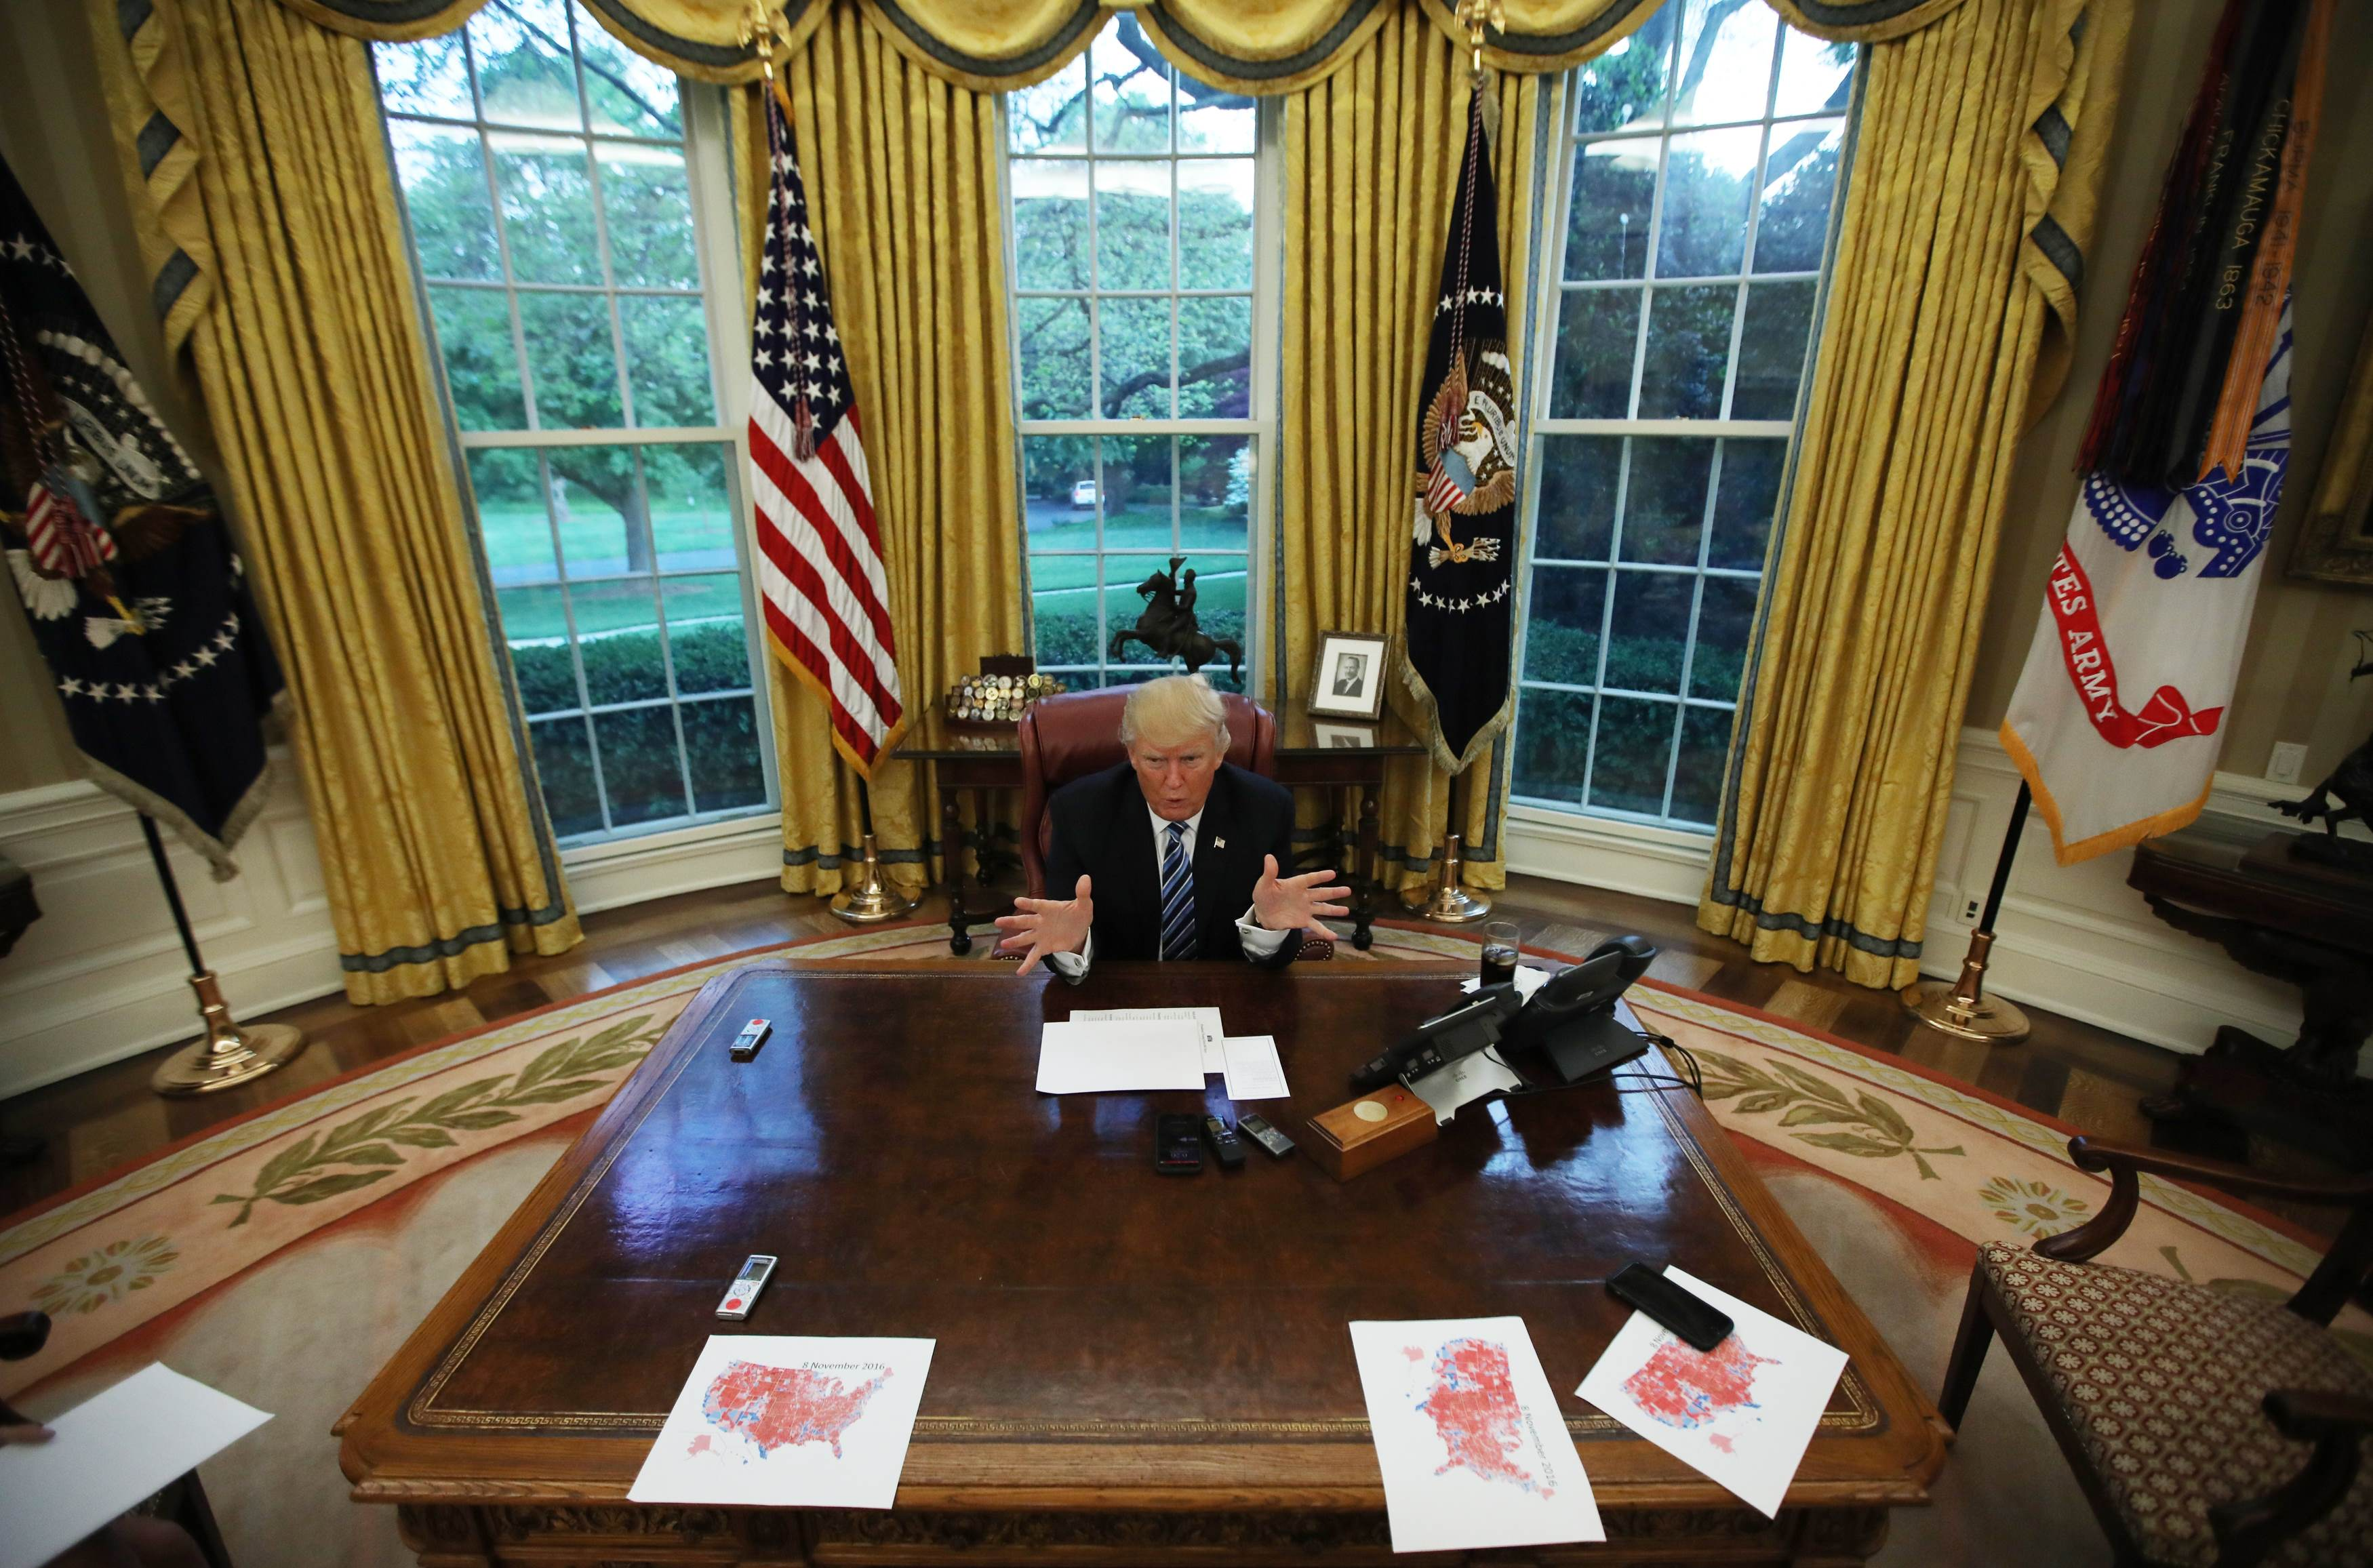 President Donald Trump during an interview with Reuters in the Oval Office of the White House in Washington on April 27, 2017. (REUTERS/Carlos Barria)